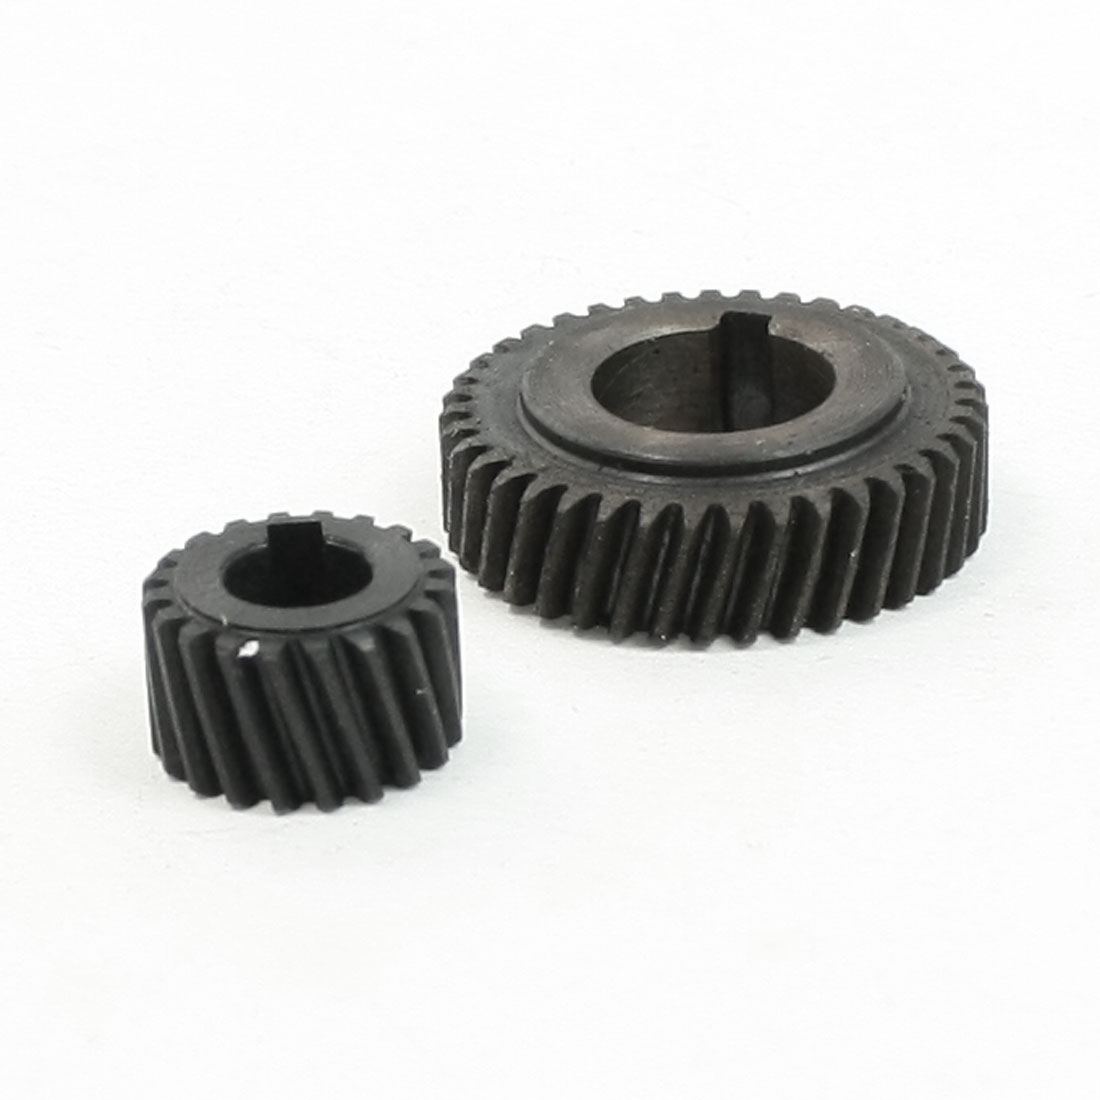 Repair Part Spiral Bevel Gear Pinion Set for RYOBI 110 Marble Machine